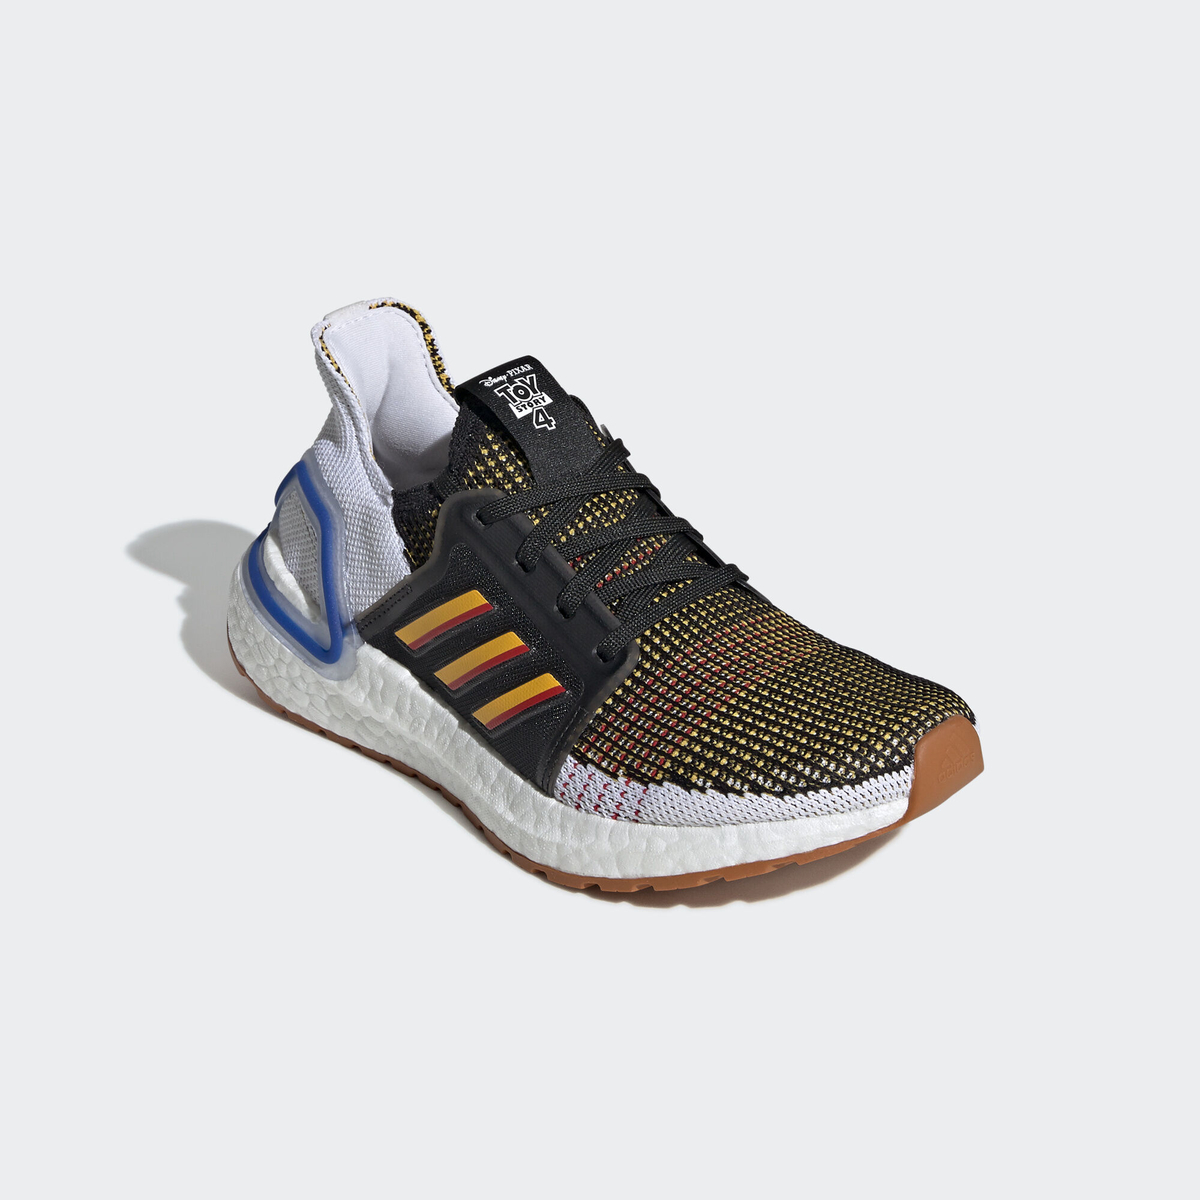 ADIDAS ULTRA BOOST 19 KIDS TOY STORY 4 CORE BLACK : ACTIVE GOLD : SCARLET 1